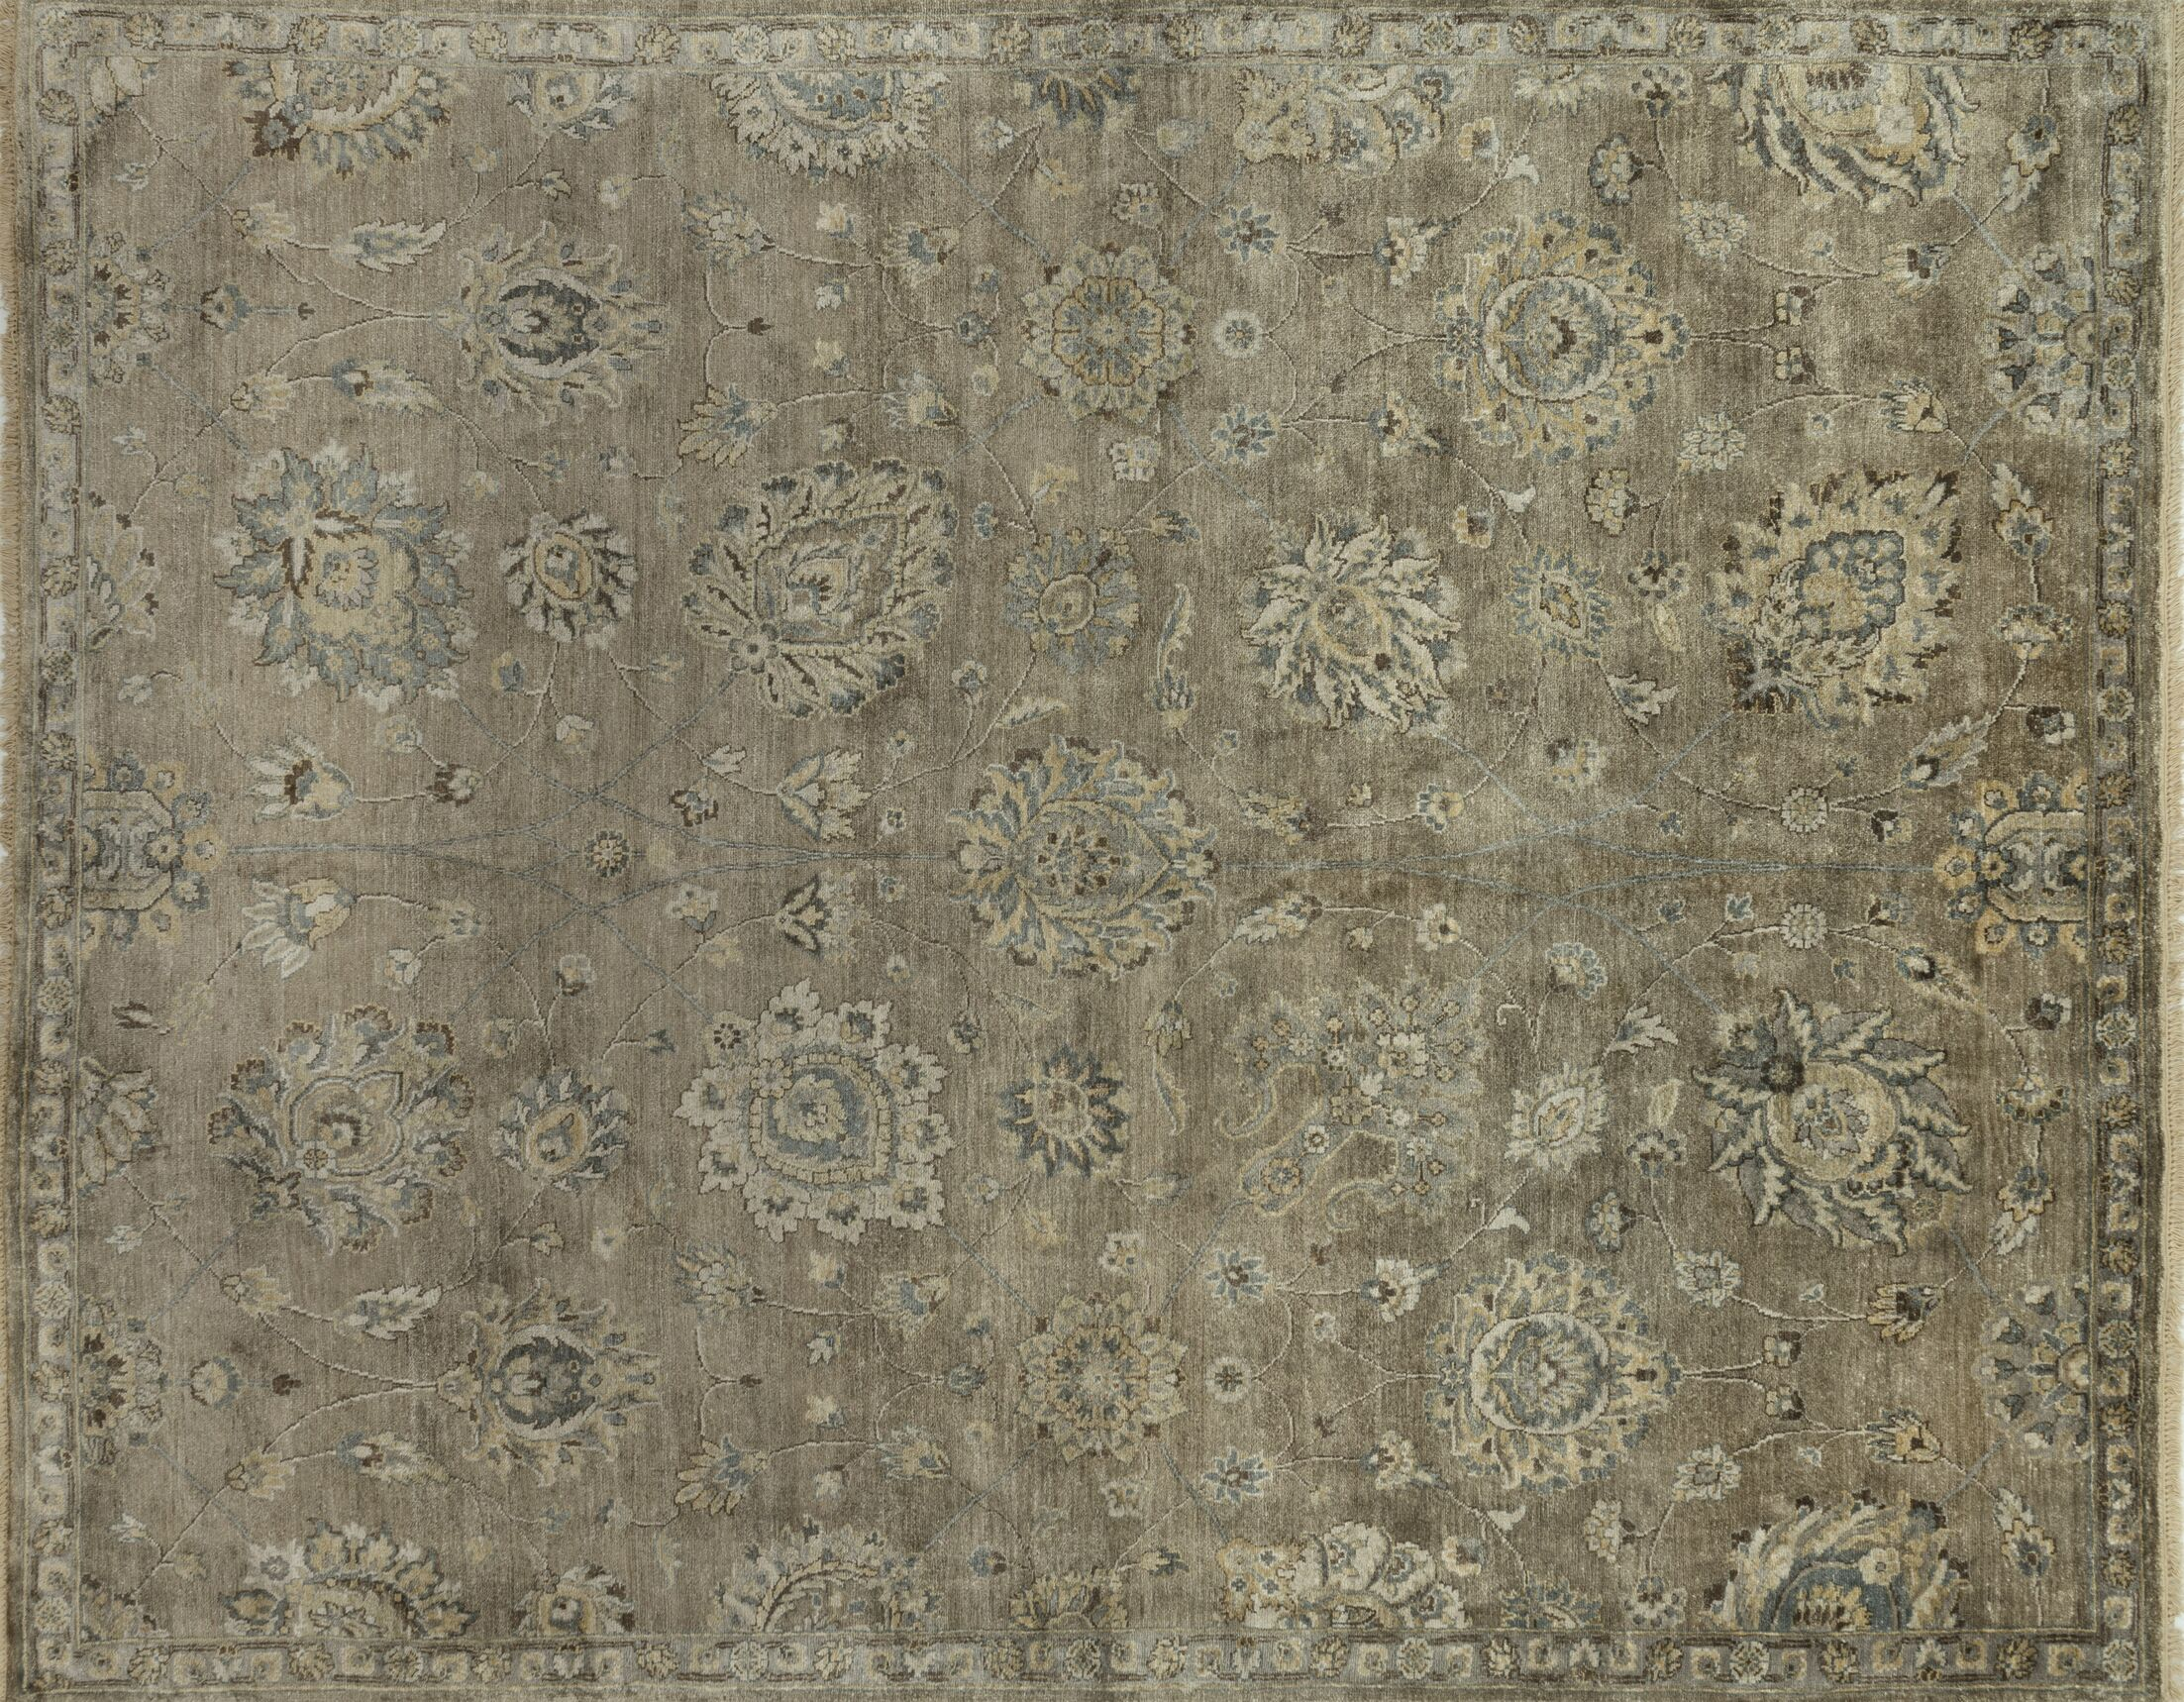 Kehoe Hand-Knotted Beige Area Rug Rug Size: Rectangle 7'9